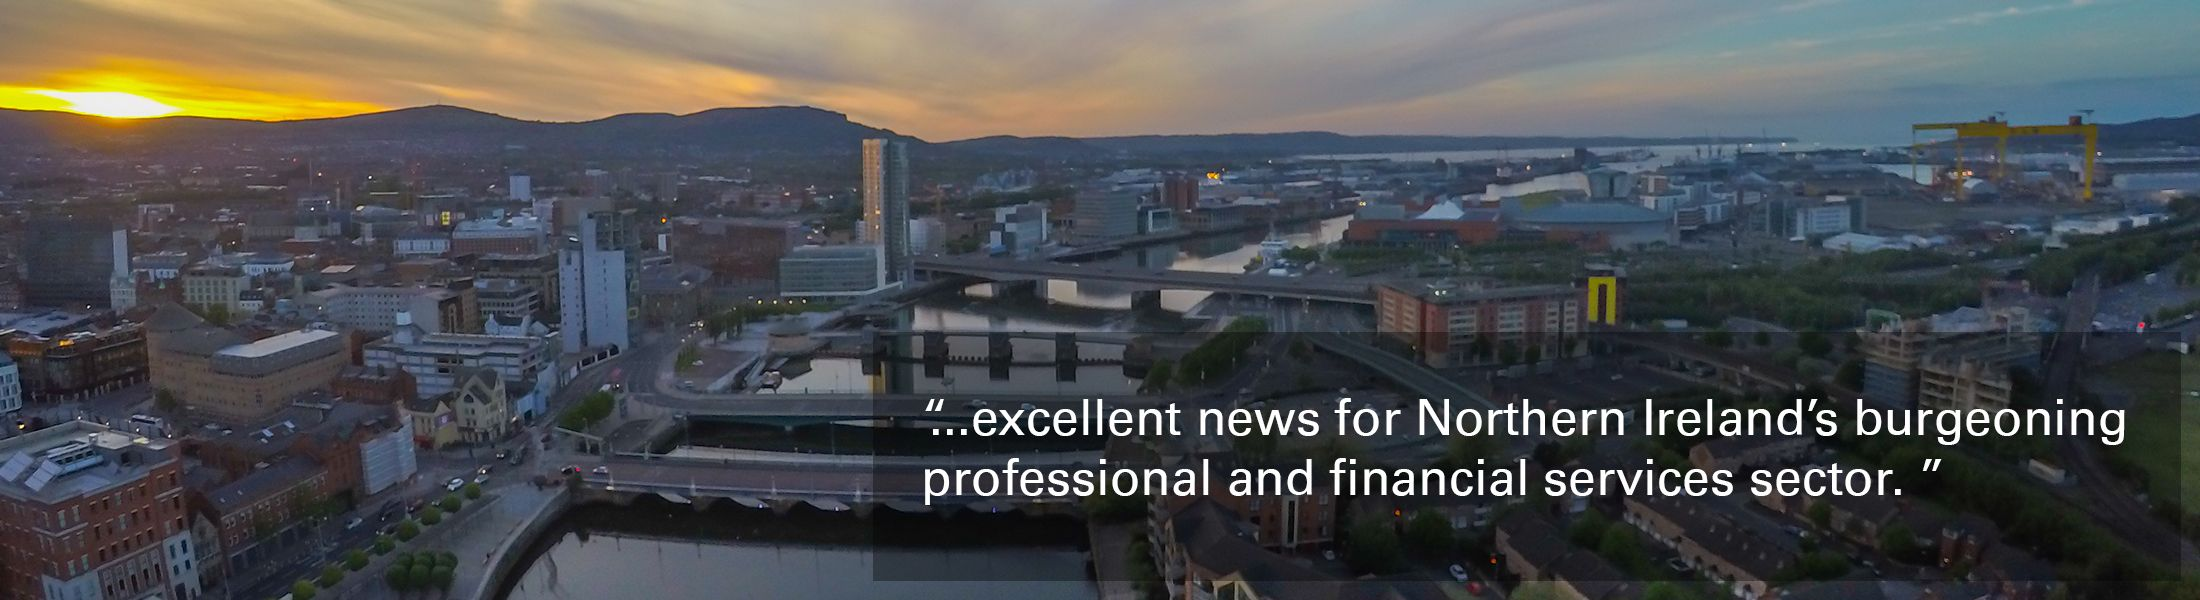 """Image of Belfast city at sunset with text overlaid """"excellent news for Northern Ireland's burgeoning professional and financial services sector."""""""